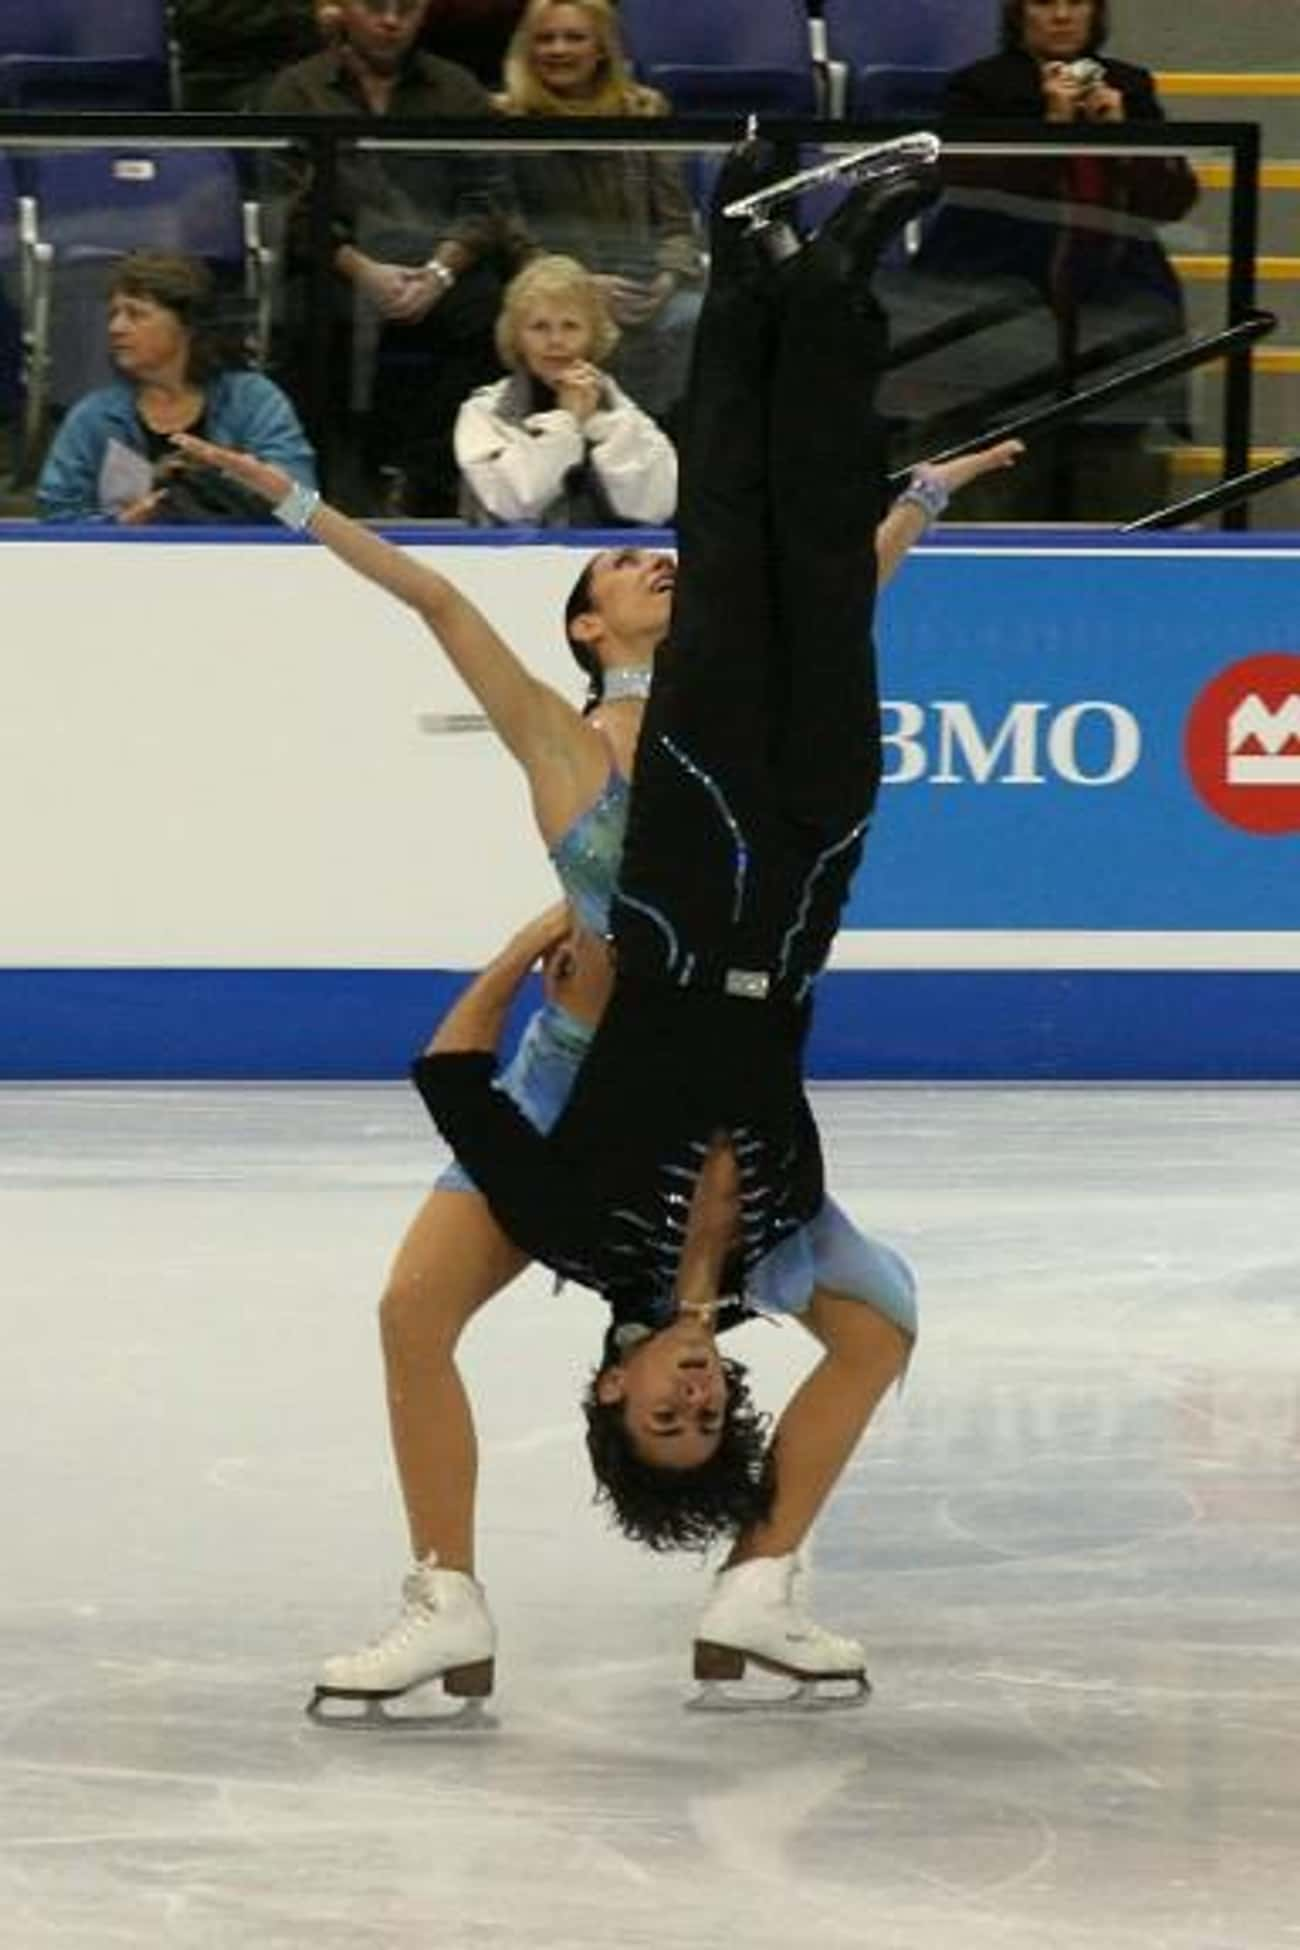 Federica Faiella is listed (or ranked) 3 on the list Famous Figure Skaters from Italy